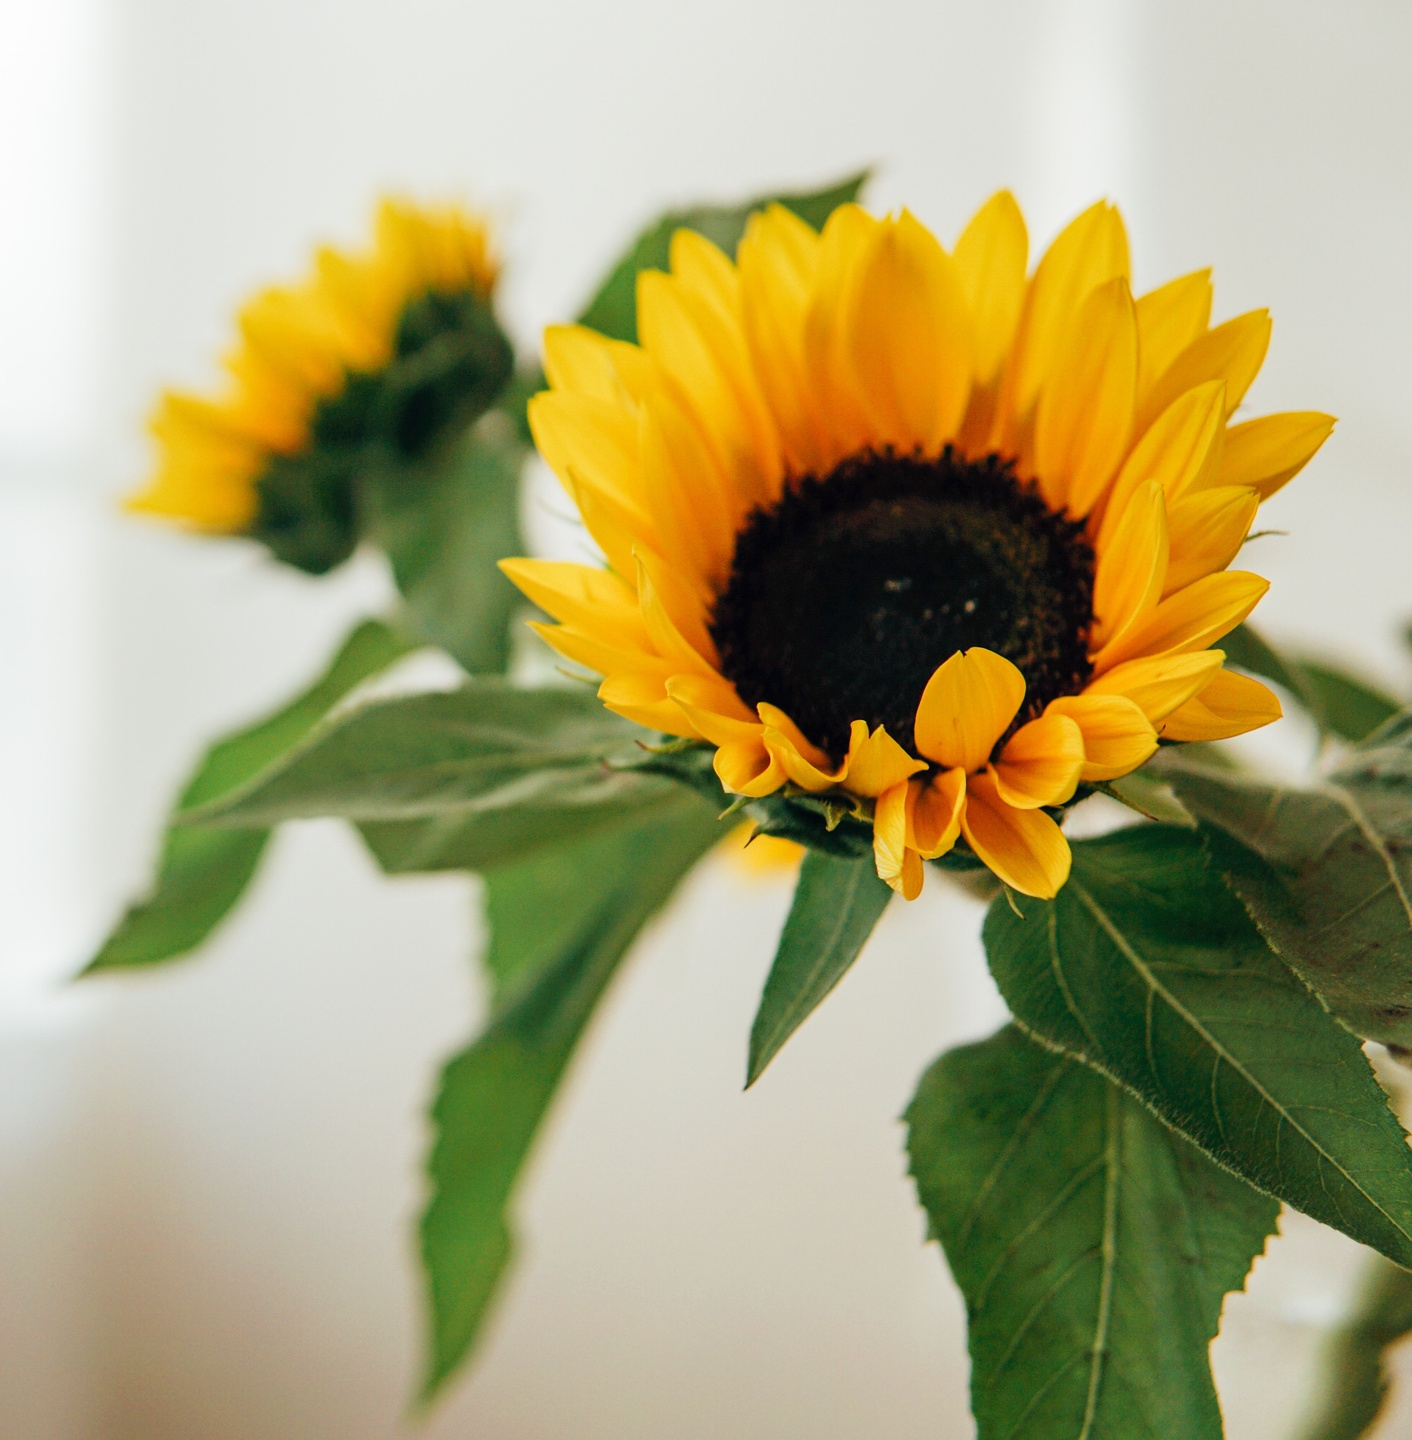 sunflowers and green leaves